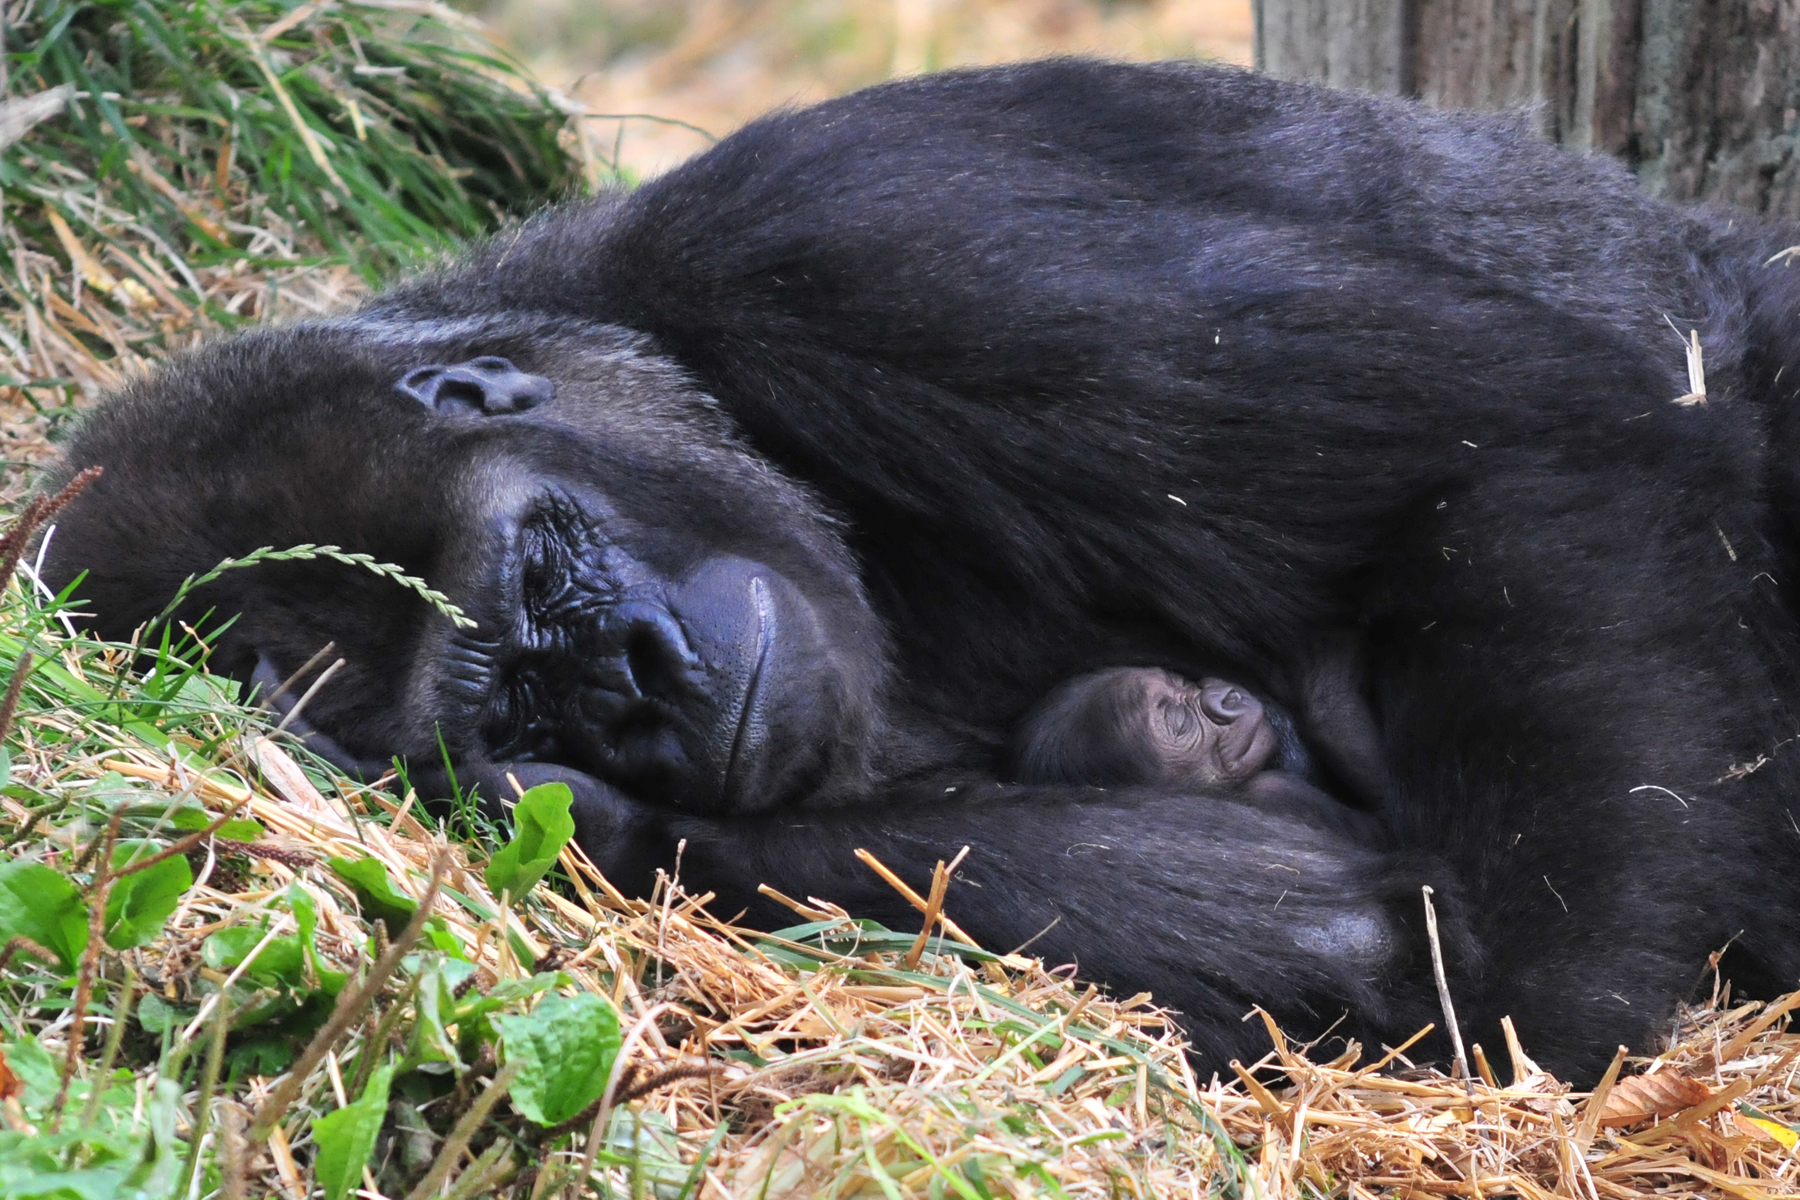 cute animal picture of the day new gorilla baby and mom